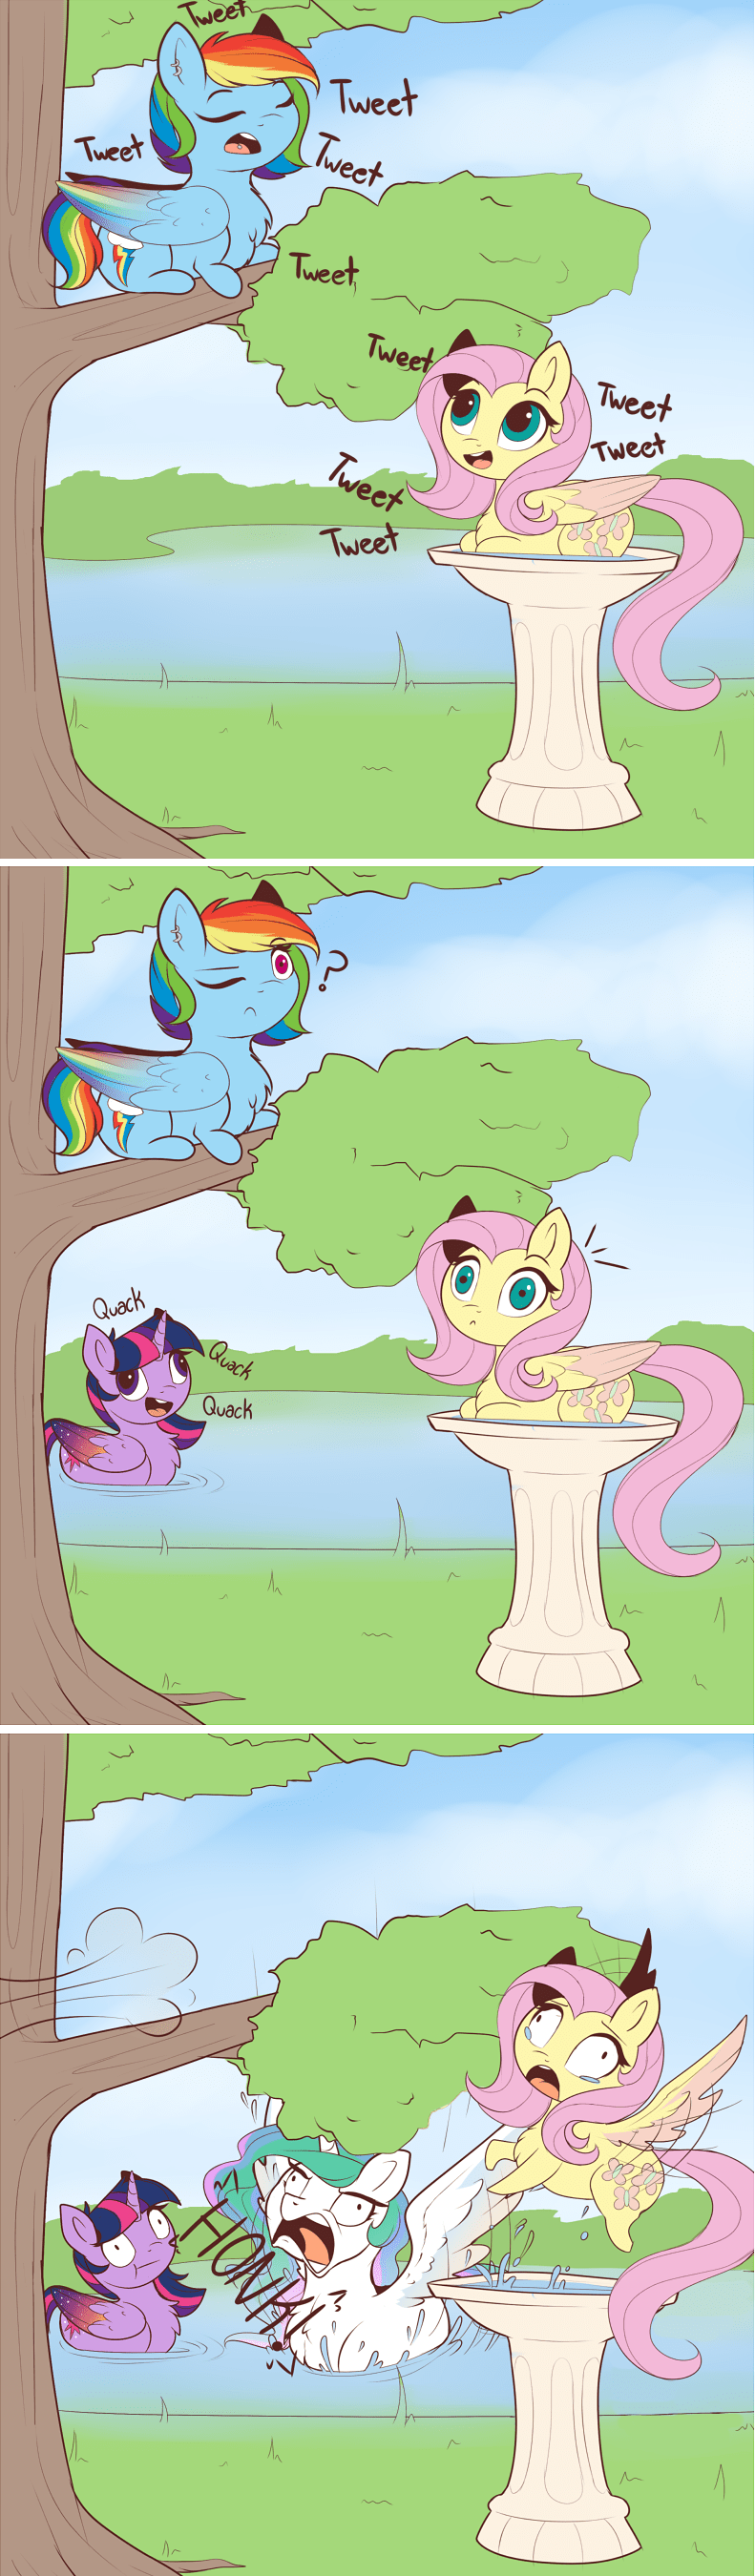 twilight sparkle,comic,princess celestia,acting like animals,fluttershy,rainbow dash